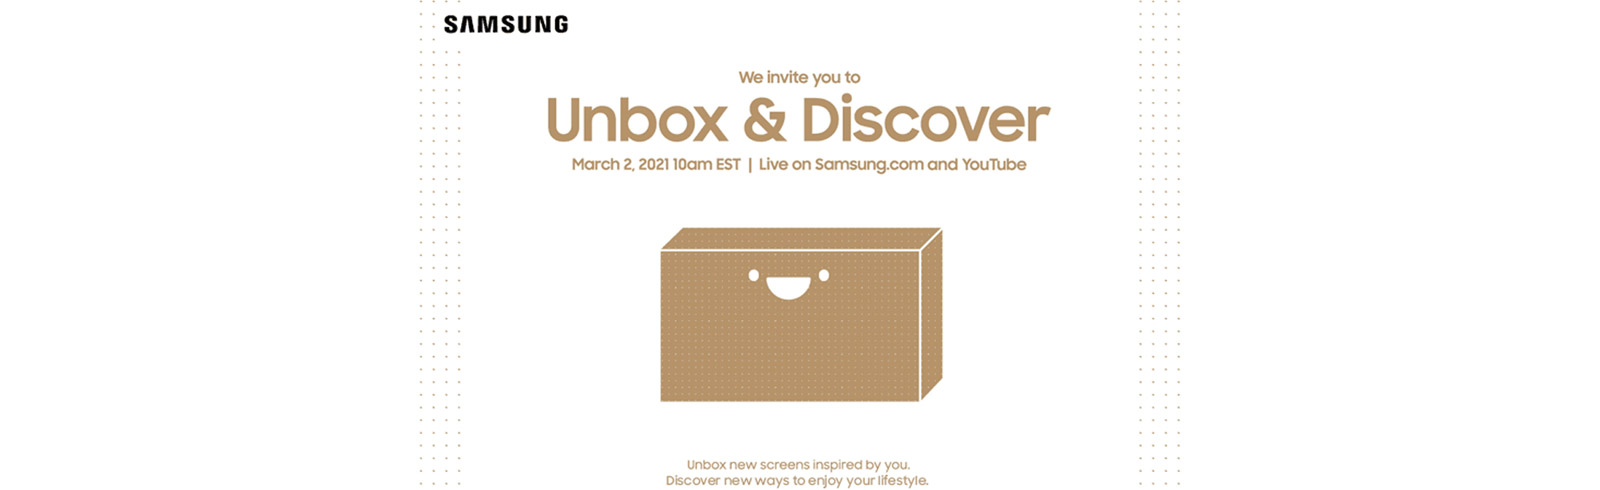 Samsung Unbox & Discover 2021 event will be held on March 2